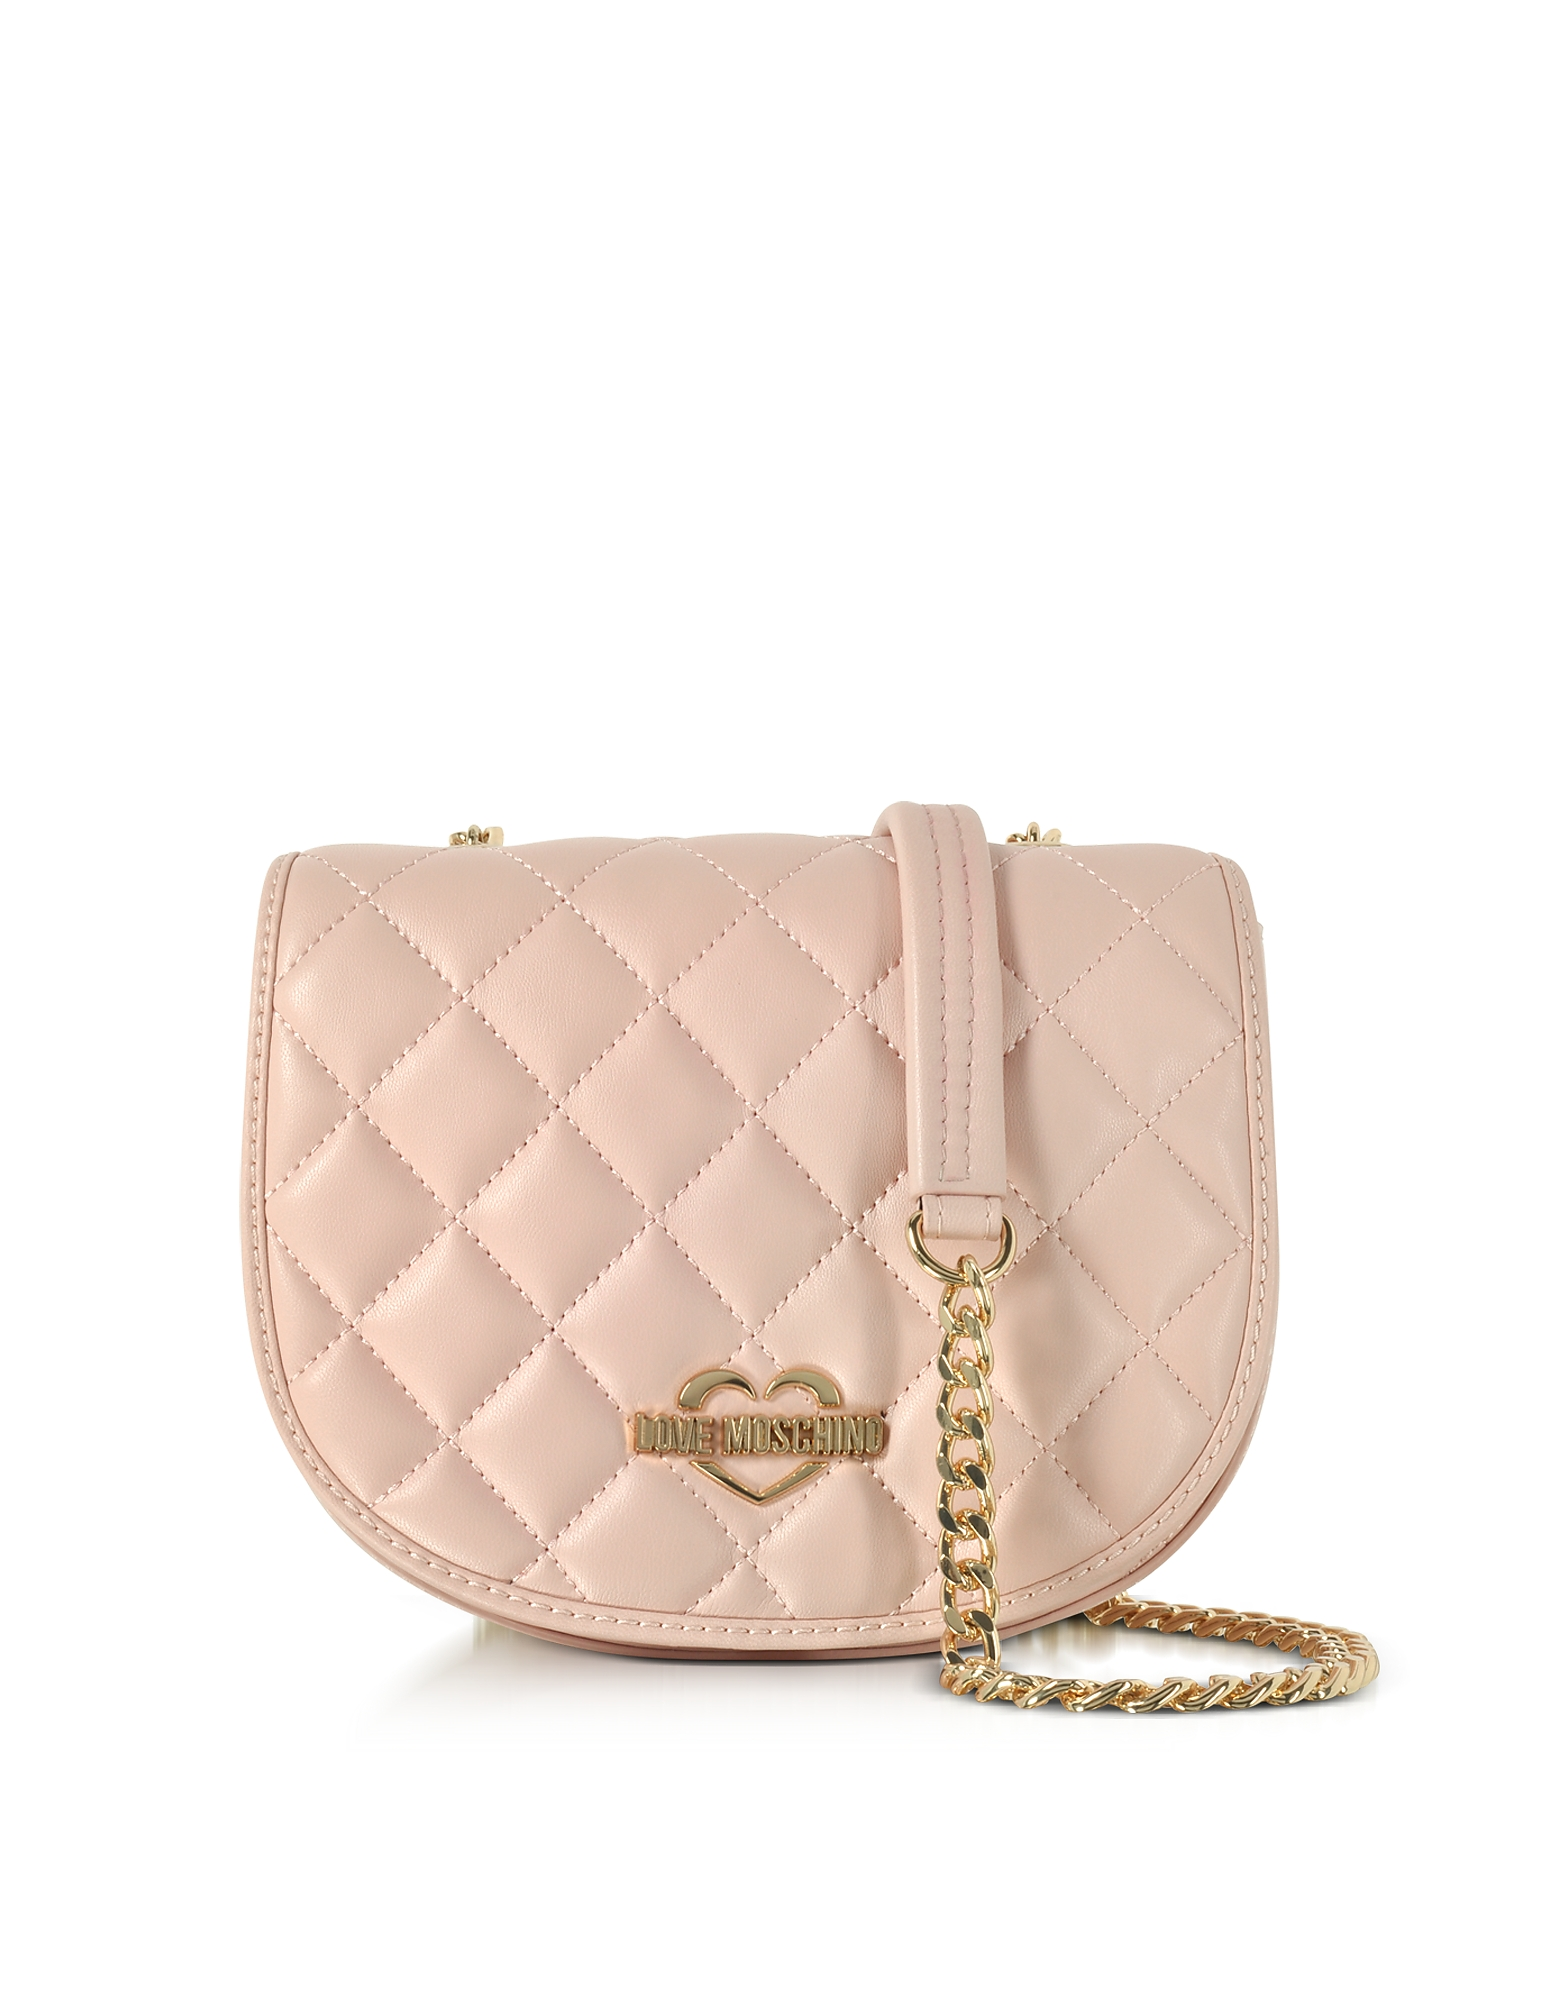 Love Moschino Handbags, Pink Superquilted Eco-Leather Small Crossbody Bag